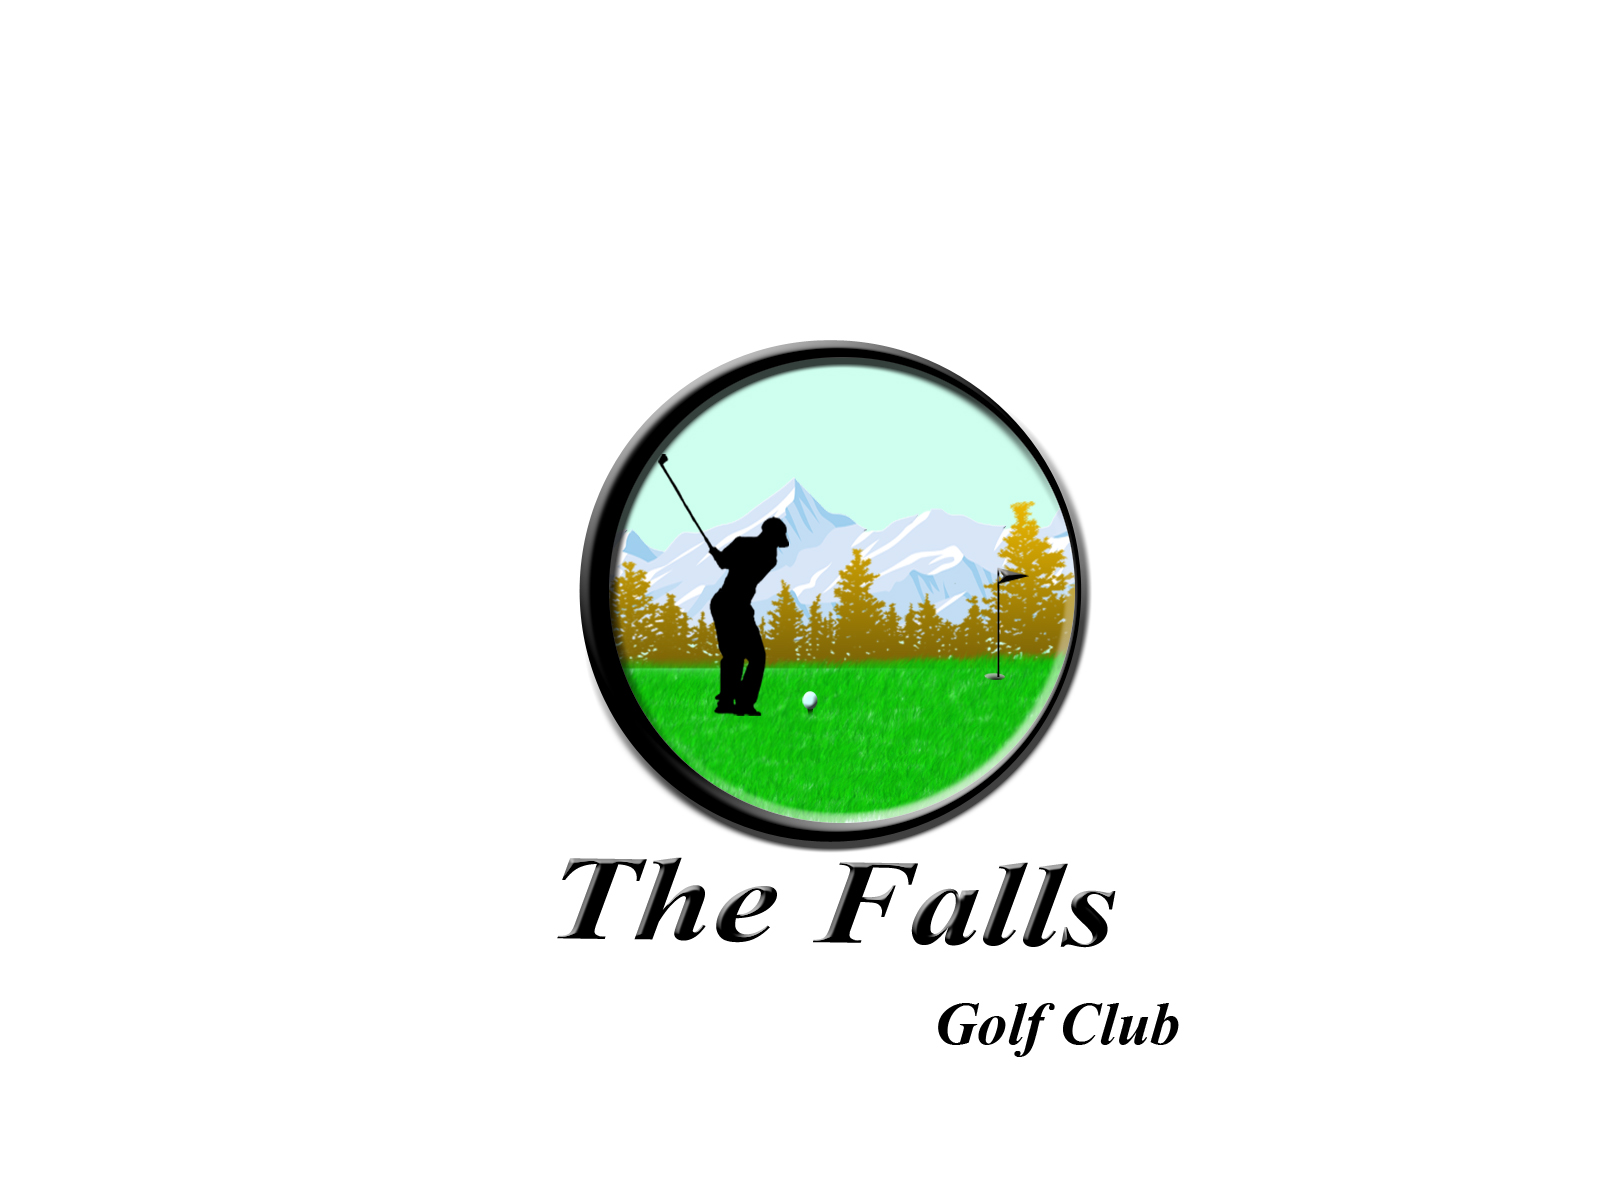 Logo Design by Mythos Designs - Entry No. 62 in the Logo Design Contest The Falls Golf Club Logo Design.